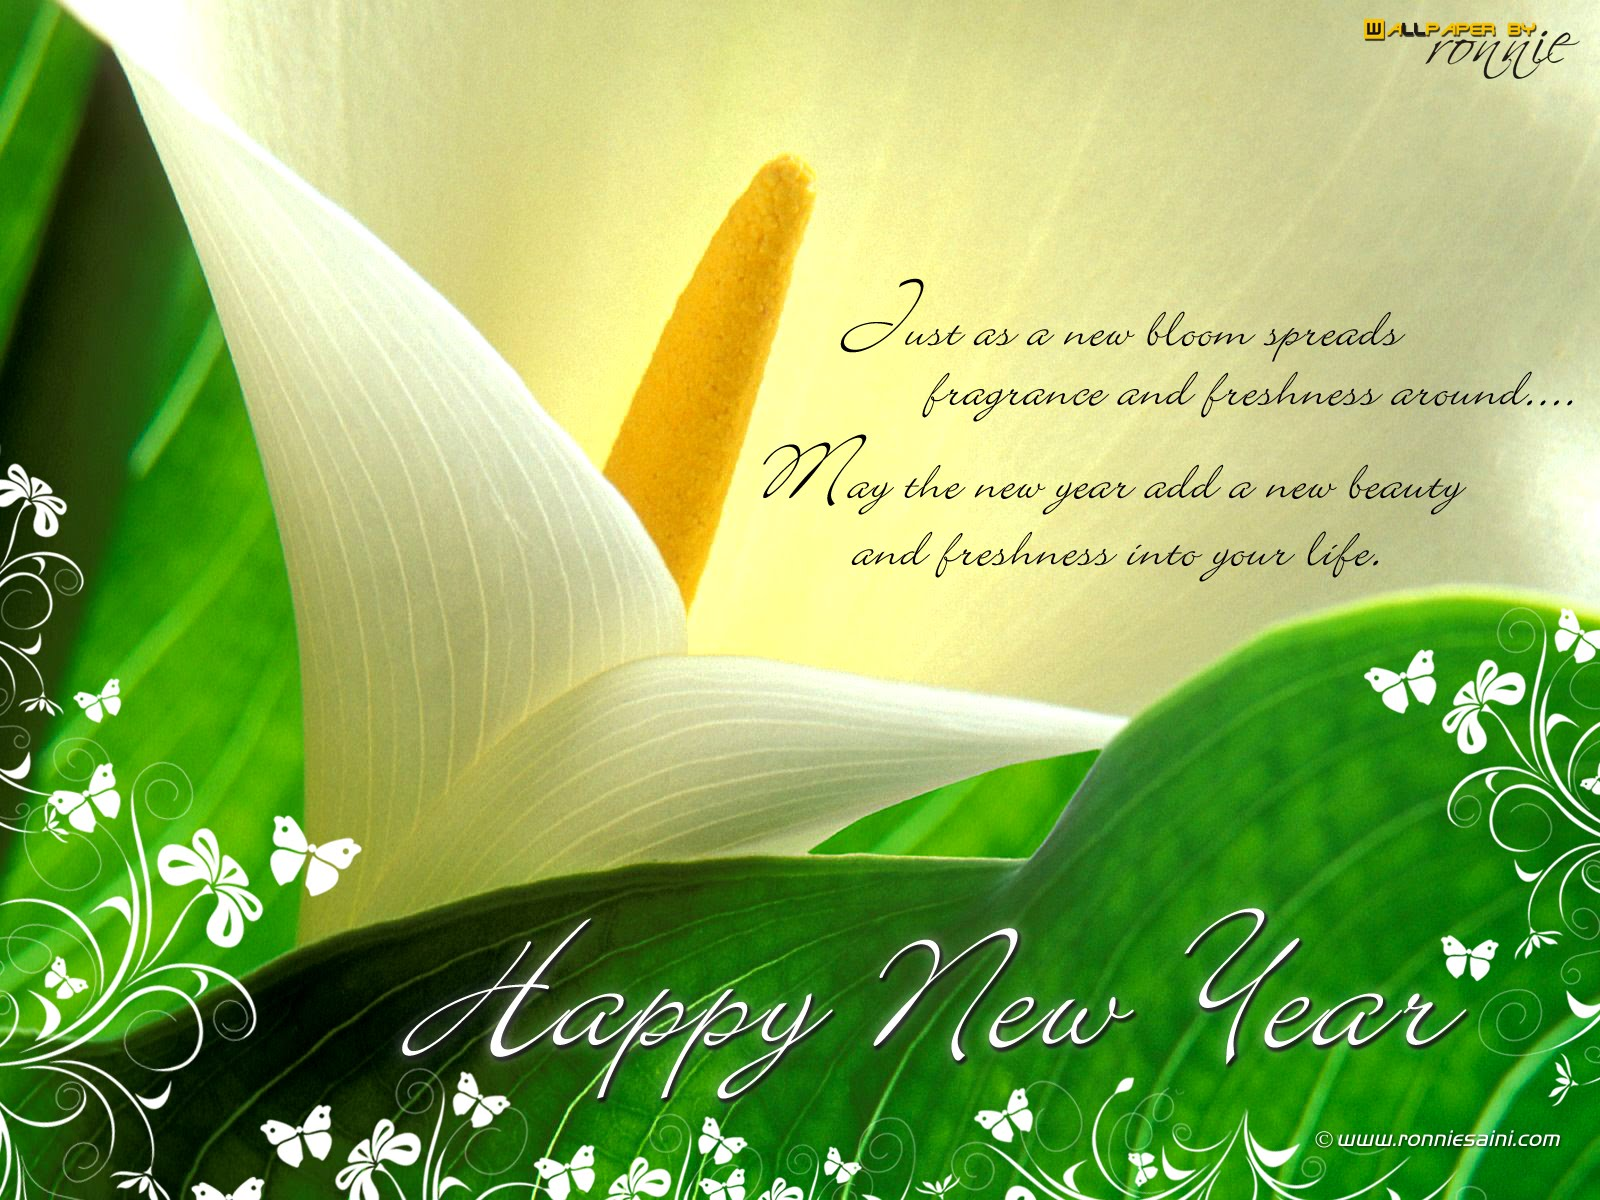 Click on Image to enlarge it. 1600 x 1200.Spiritual Happy New Year Greeting Cards